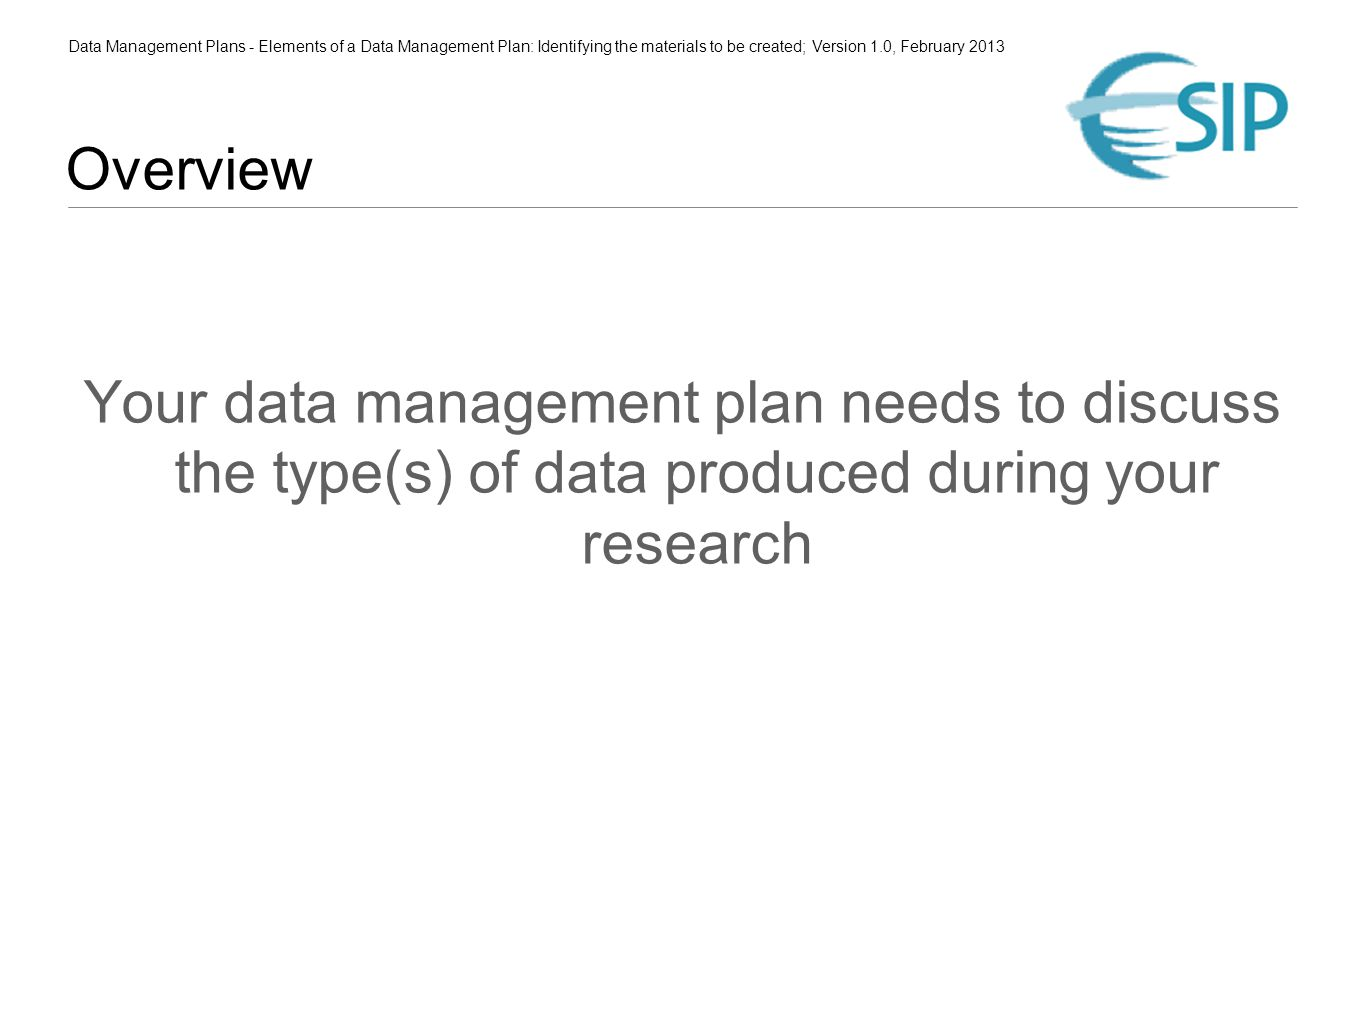 Data Management Plans - Elements of a Data Management Plan: Identifying the materials to be created; Version 1.0, February 2013 Overview Your data management plan needs to discuss the type(s) of data produced during your research